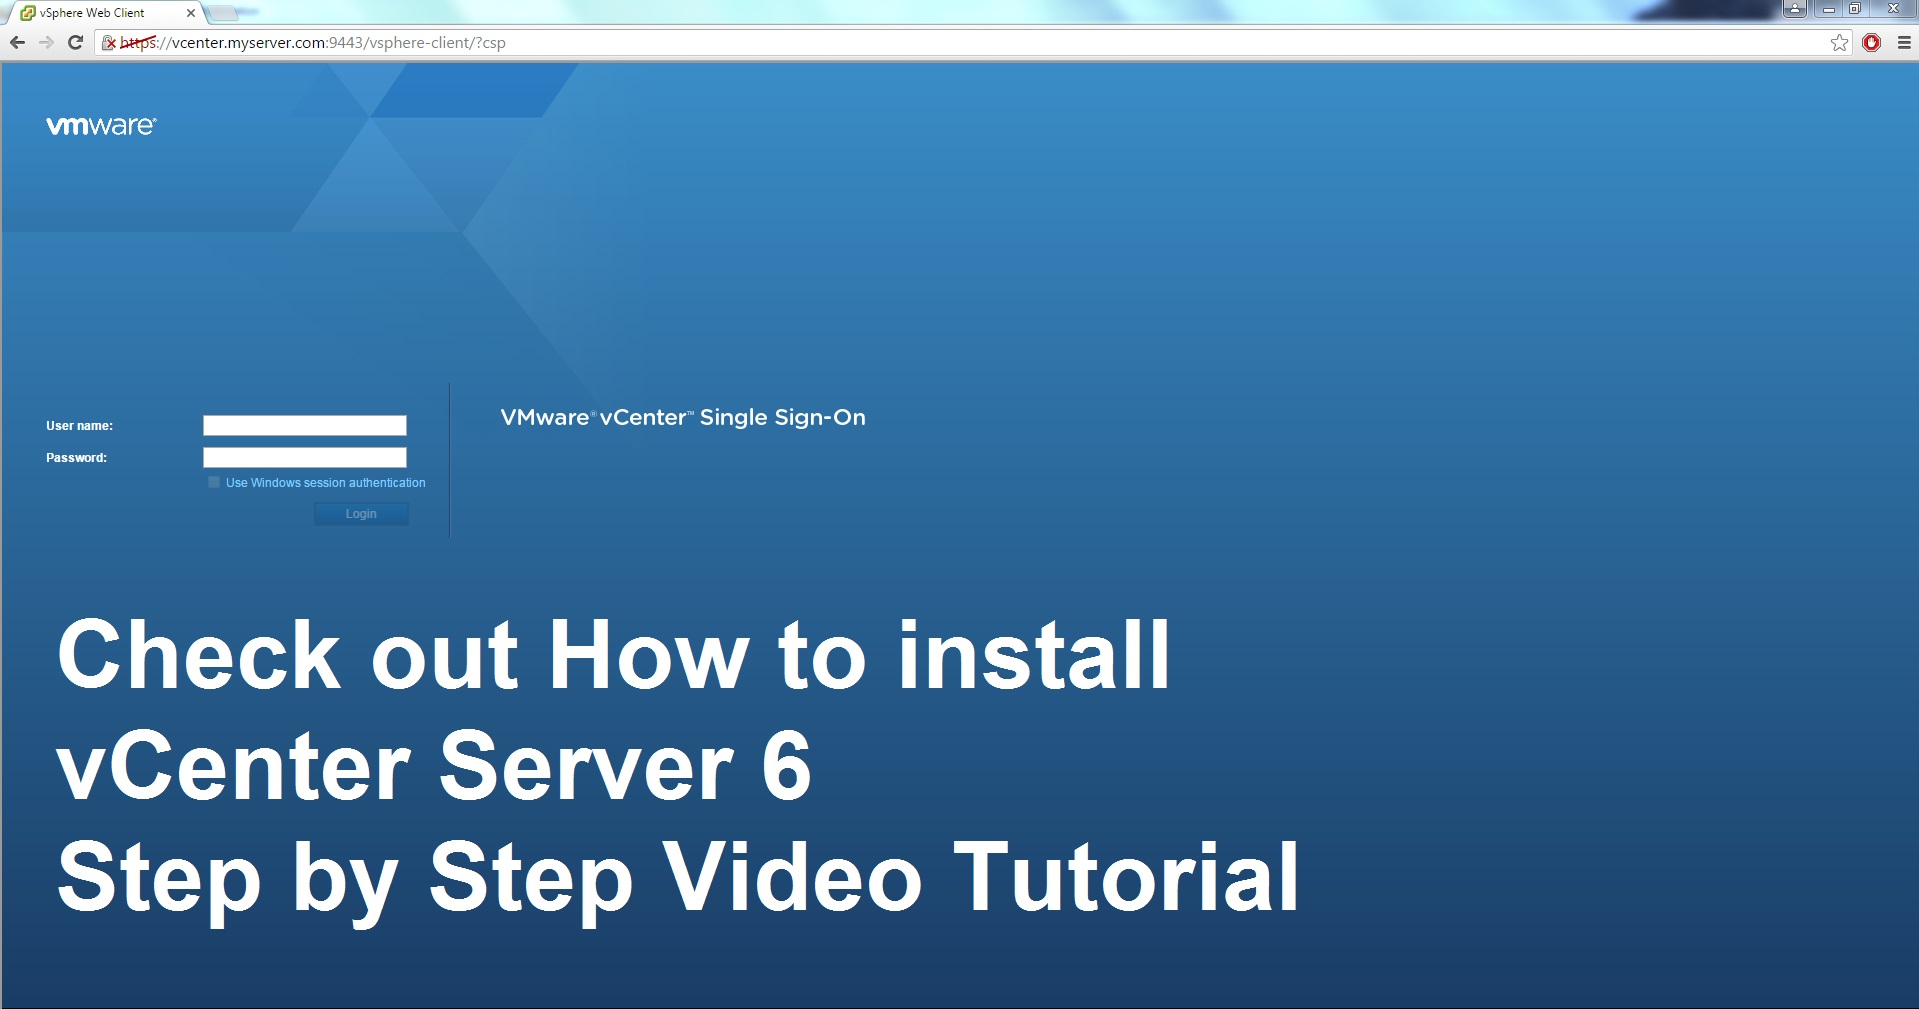 Photo of vCenter 6 Installation Step by Step Video Tutorial